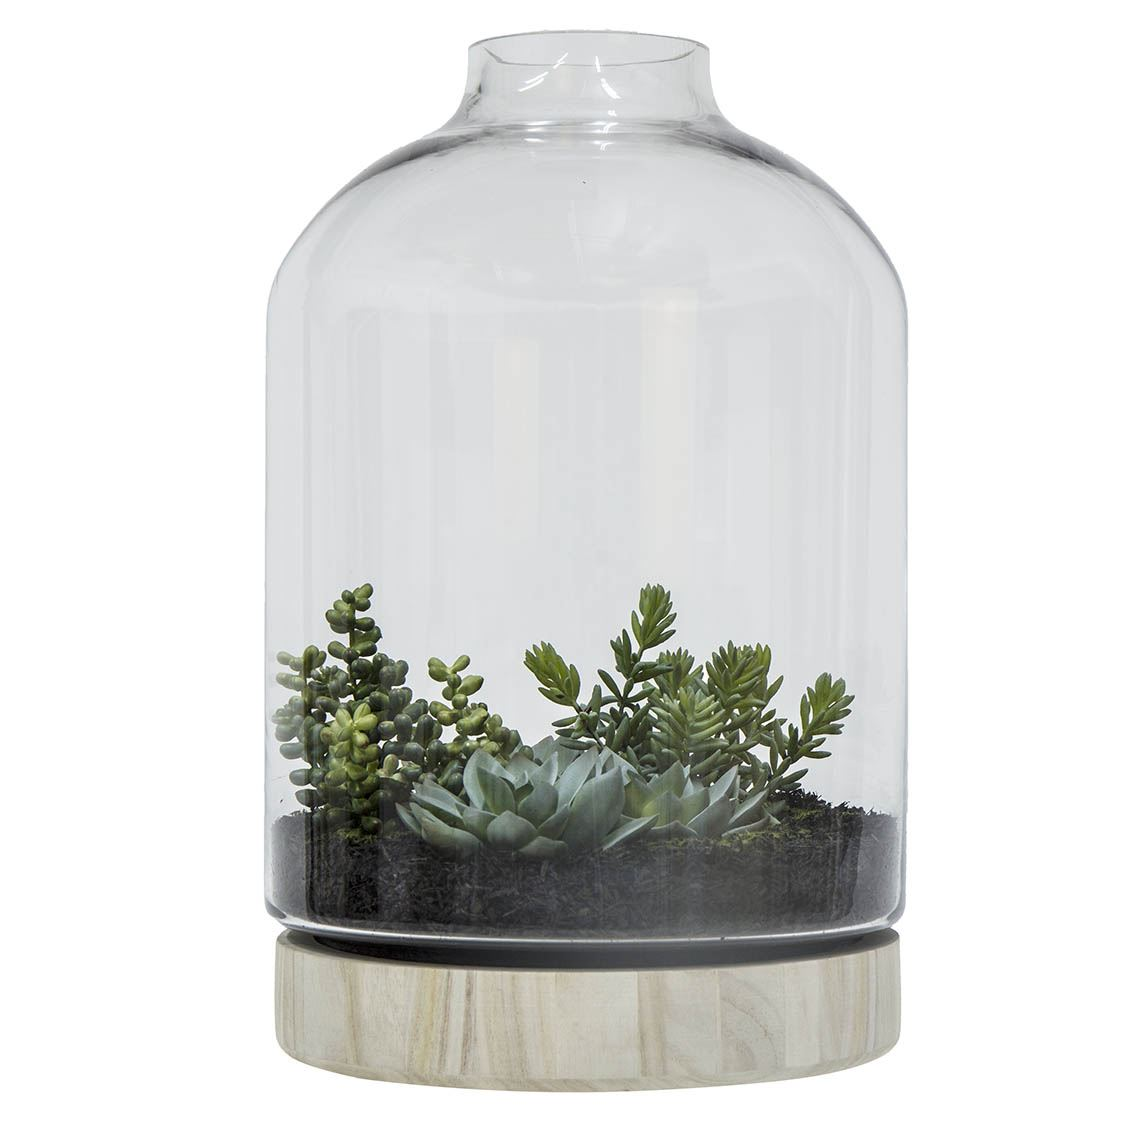 Rogue Succulent Terrarium Size W 27cm x D 27cm x H 50cm in Green Plastic/Glass Freedom by Freedom, a Plants for sale on Style Sourcebook